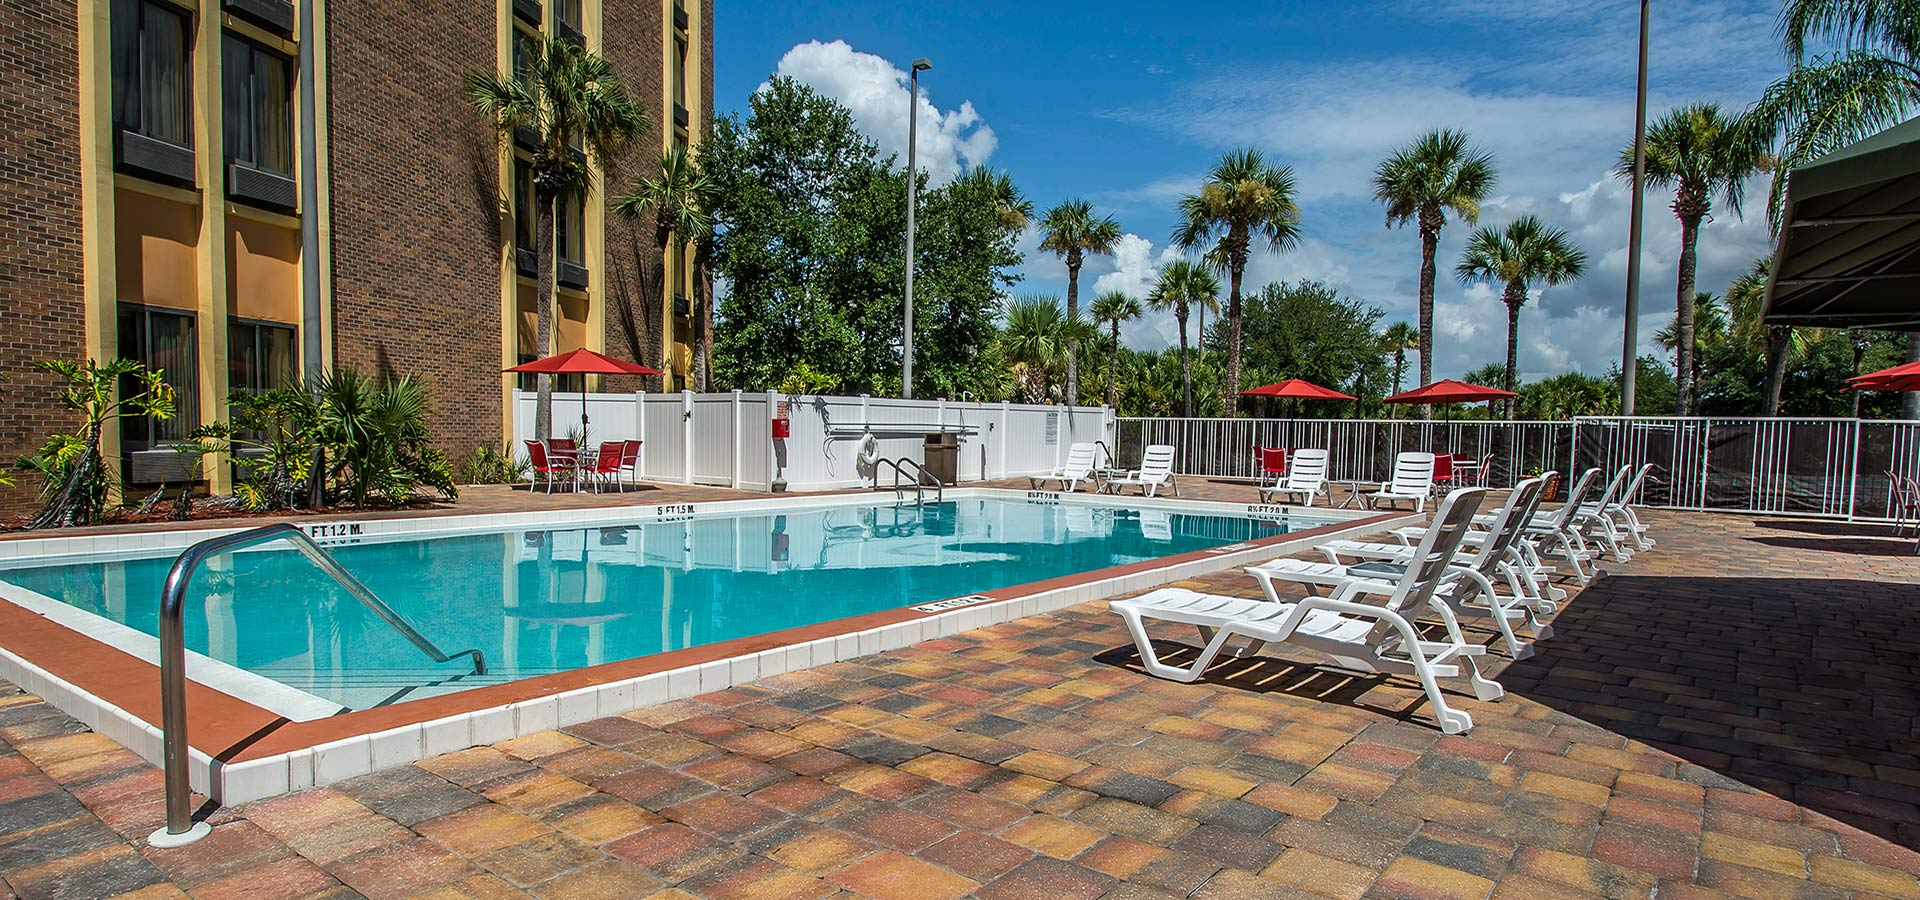 Comfort Inn Maingate Kissimmee Pool Area